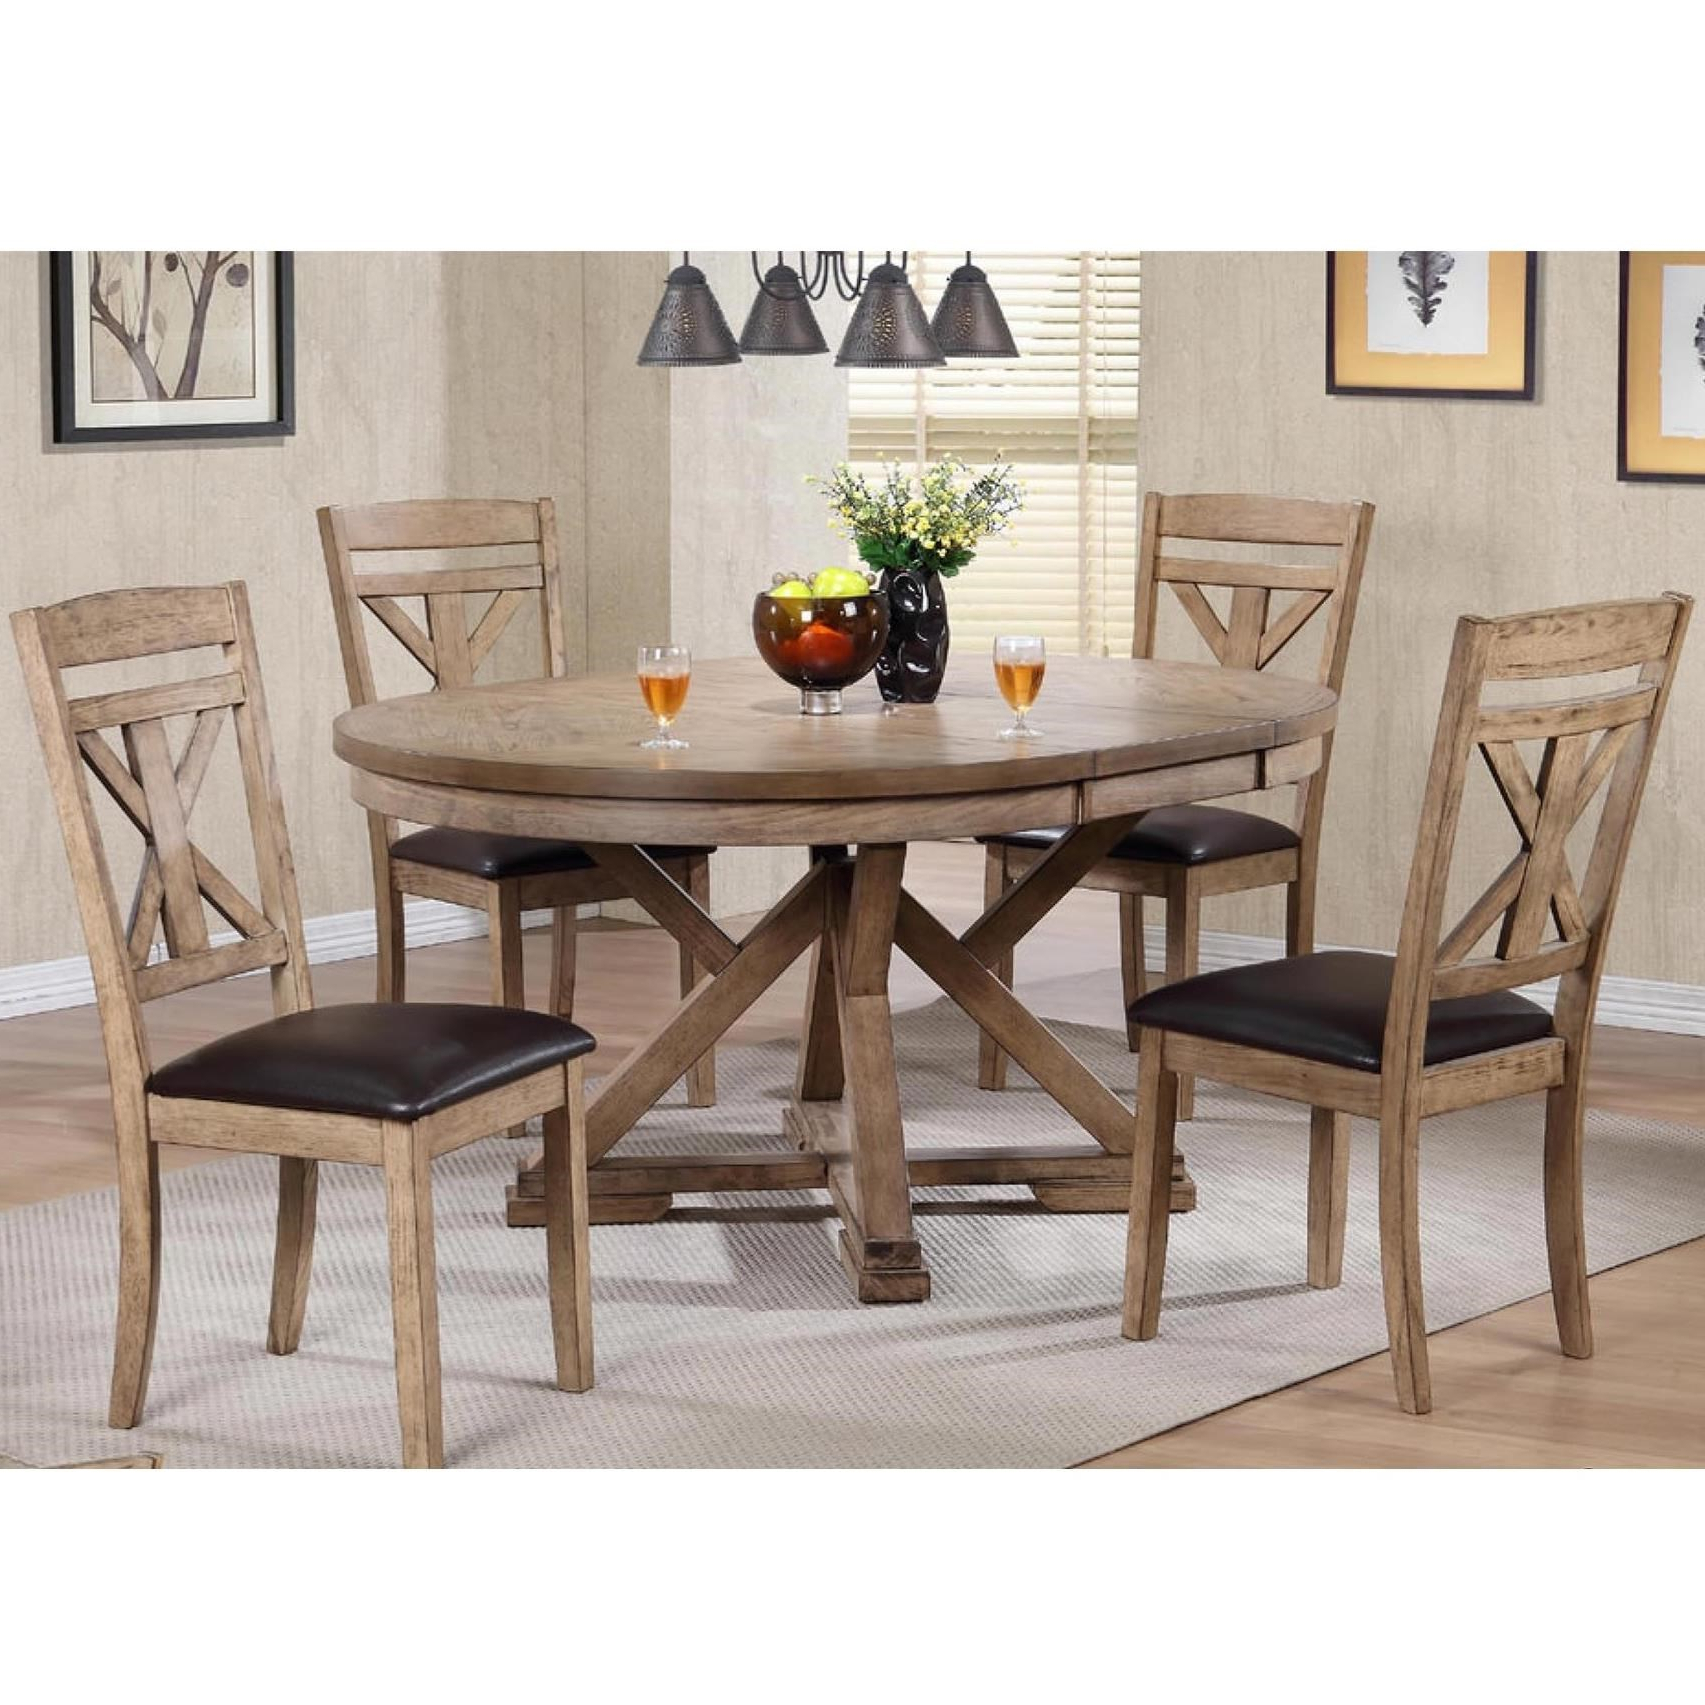 Popular 5 Piece Dining Sets Inside Grandview 5 Piece Dining Setwinners Only At Dunk & Bright Furniture (View 6 of 20)